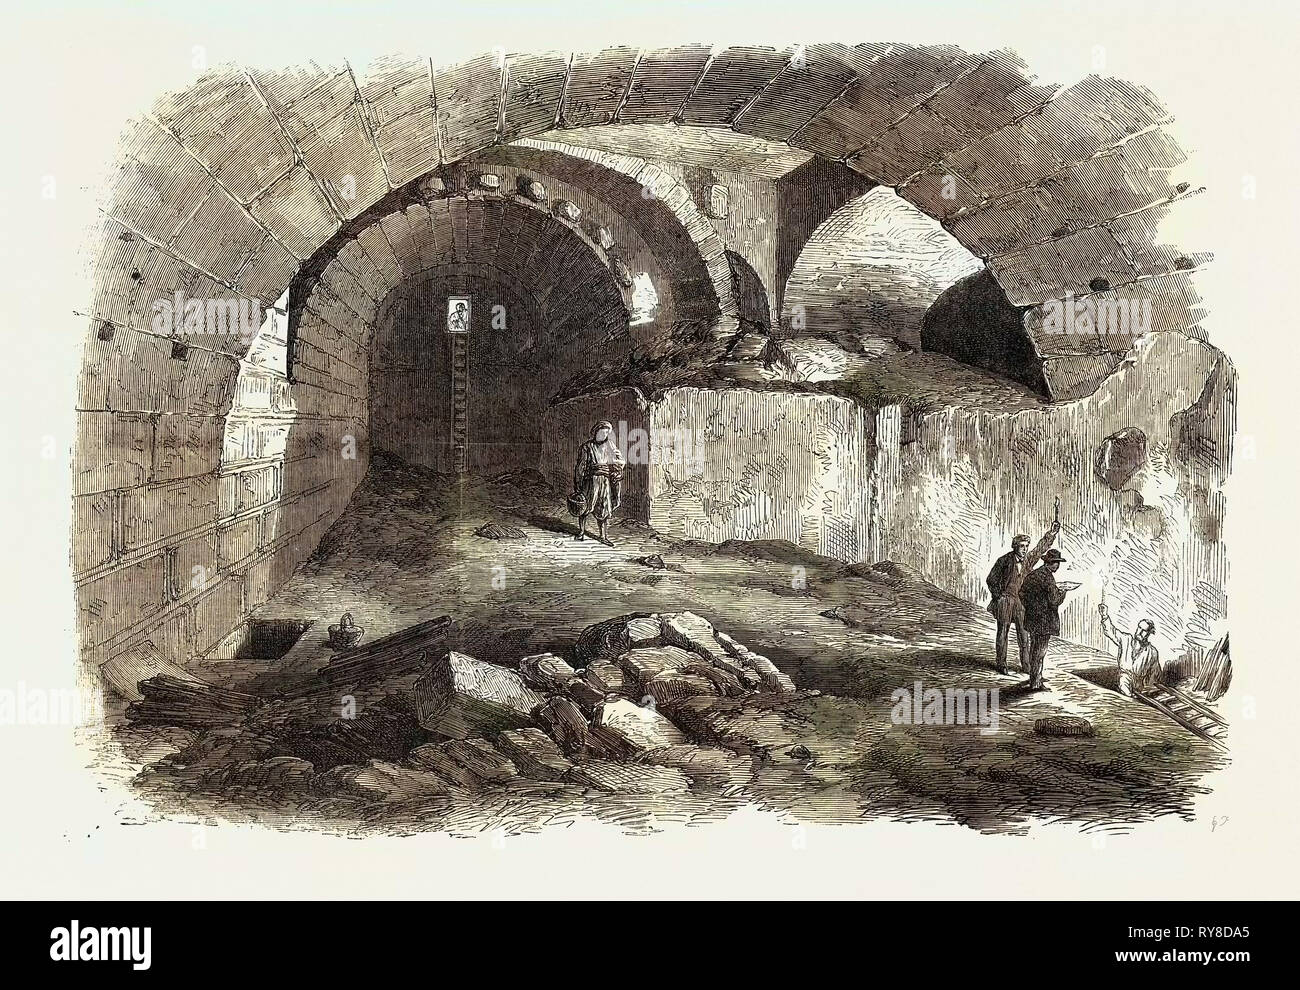 The Explorations at Jerusalem: Wilson's Arch Haram Wall 1869 - Stock Image